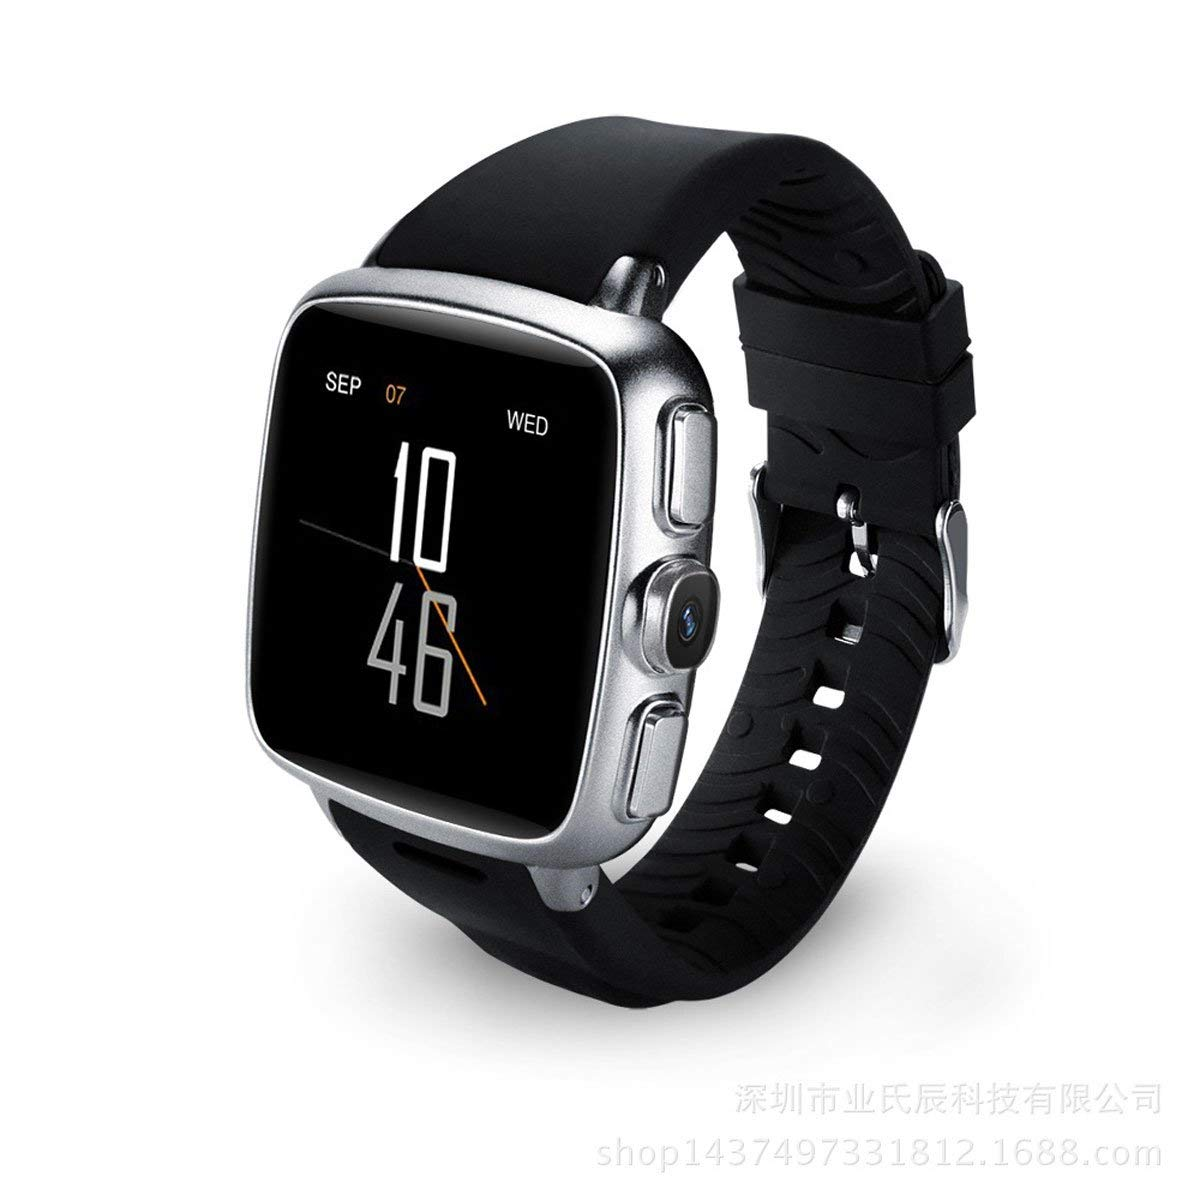 XiYunHan smart watch Andrews WIFI 3G GPS positioning Smart wear camera Heart rate monitoring (Color : Silver)